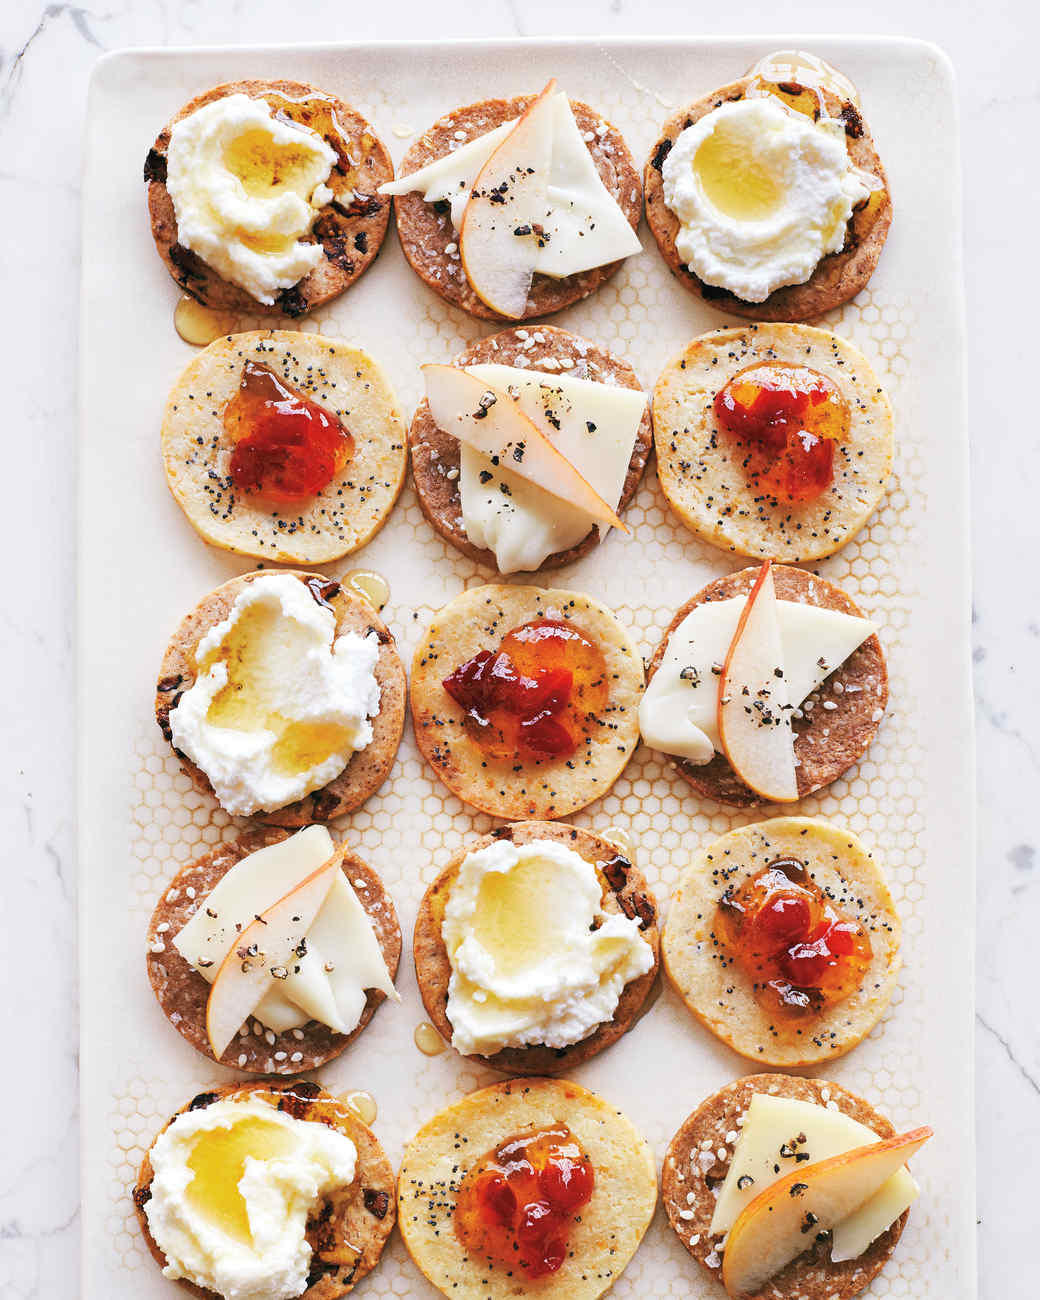 A sneak peek of martha stewart 39 s appetizers martha stewart for Gluten free canape ideas